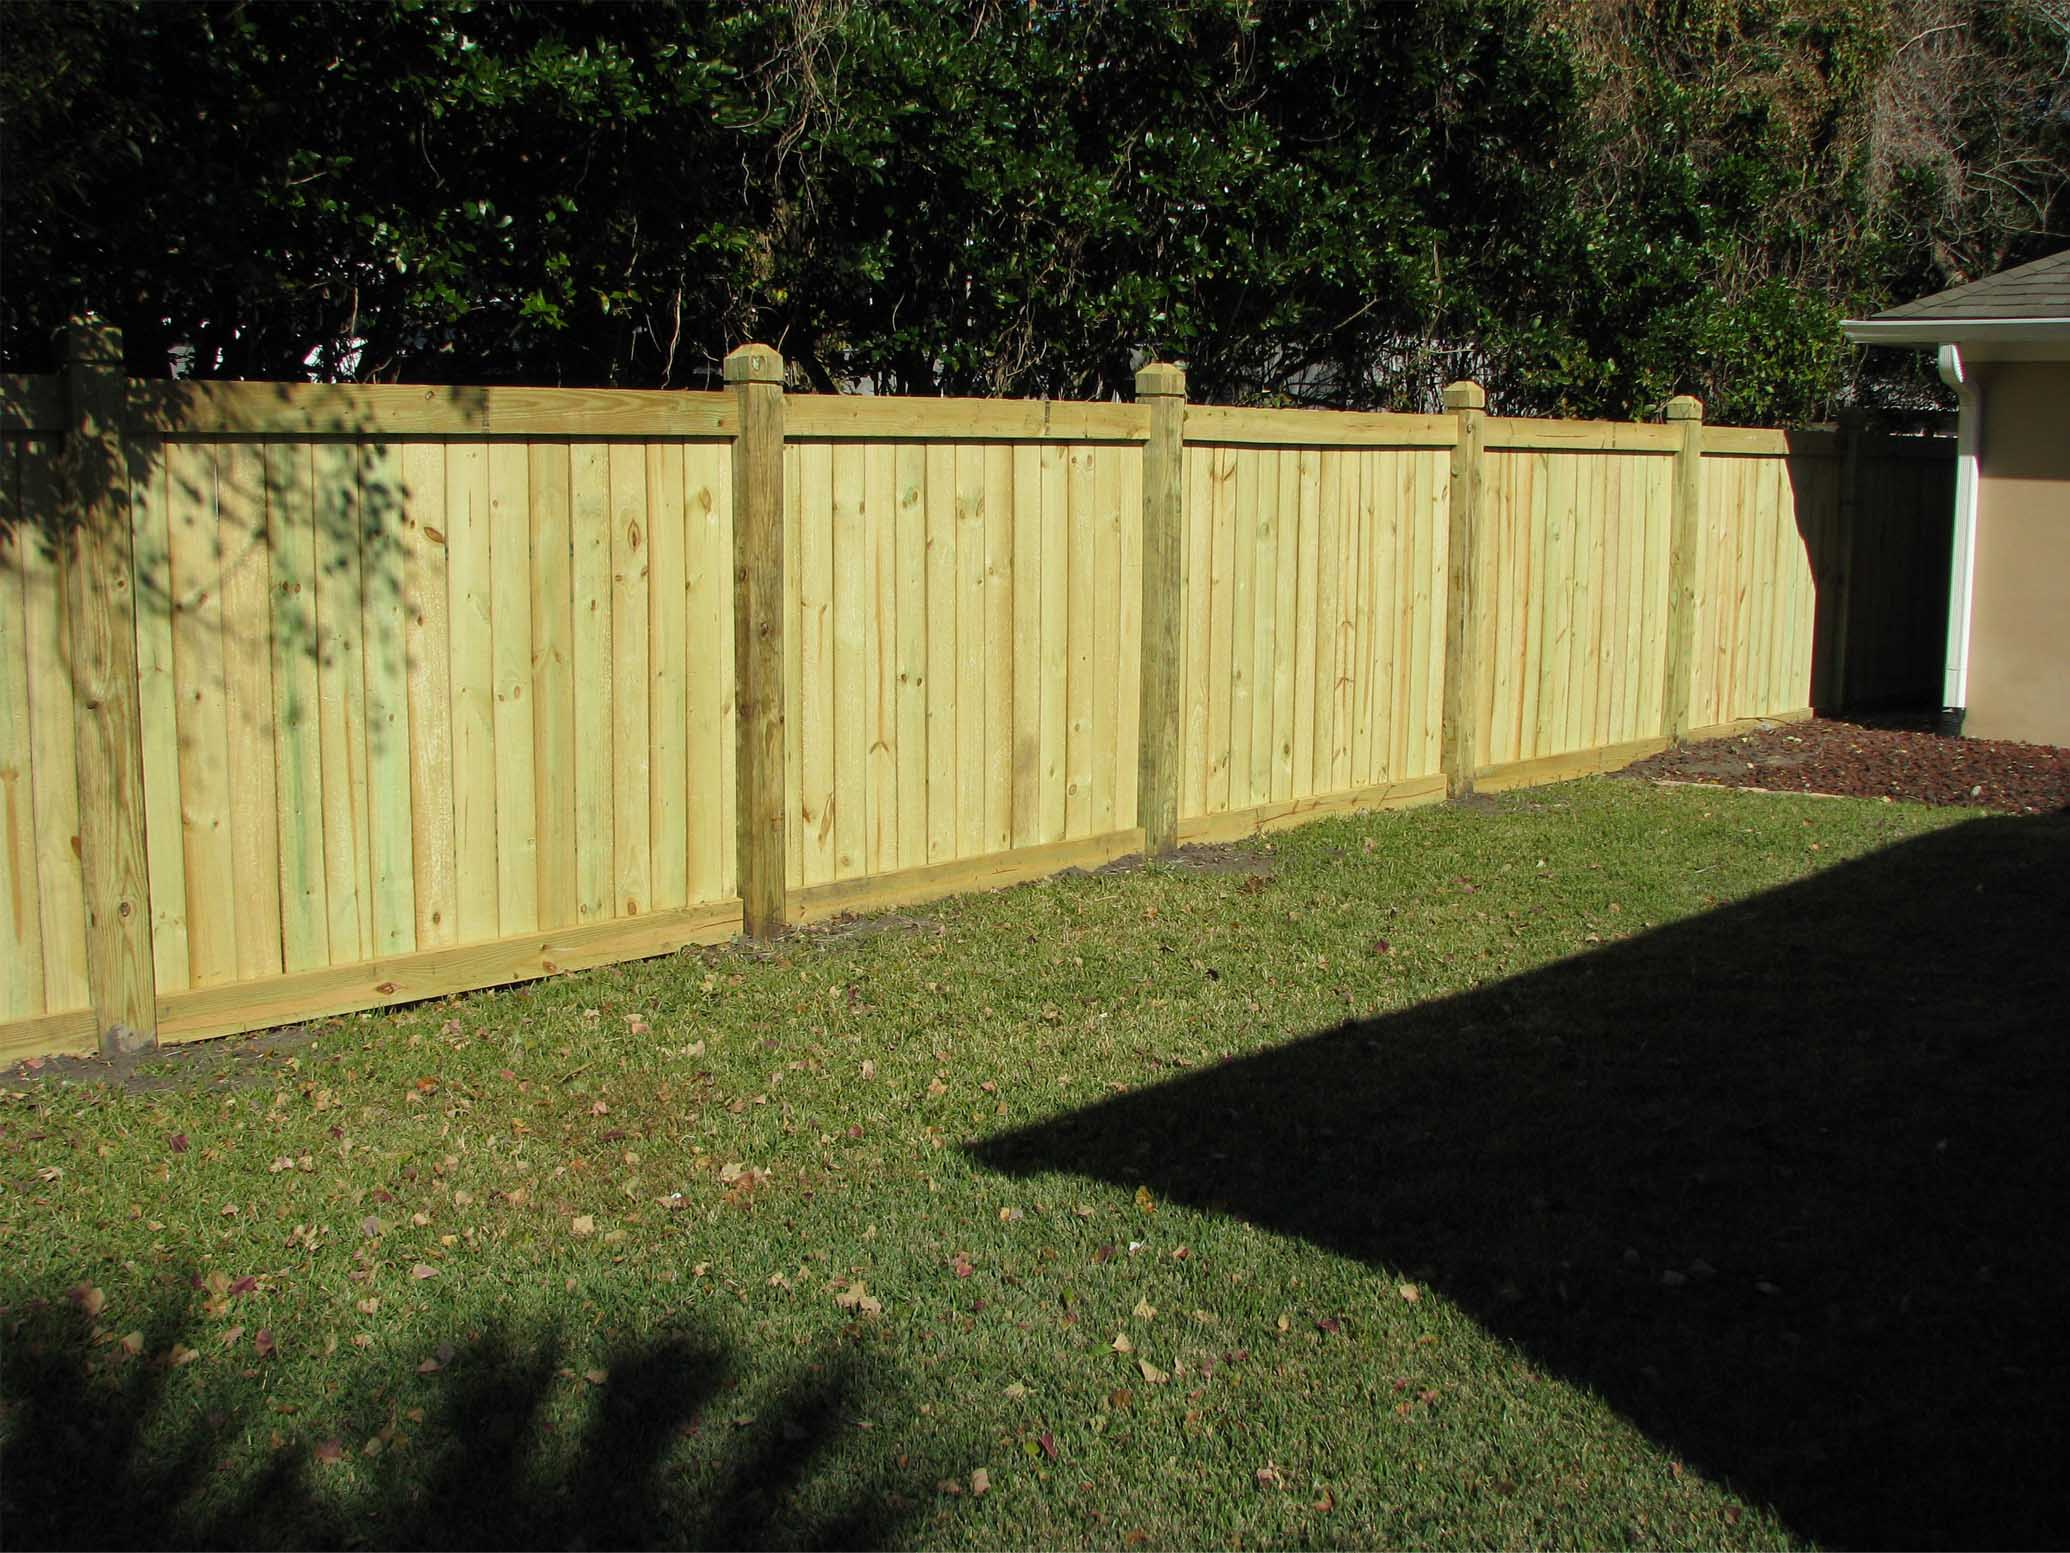 Gallery dpm fence llc for Types of fences